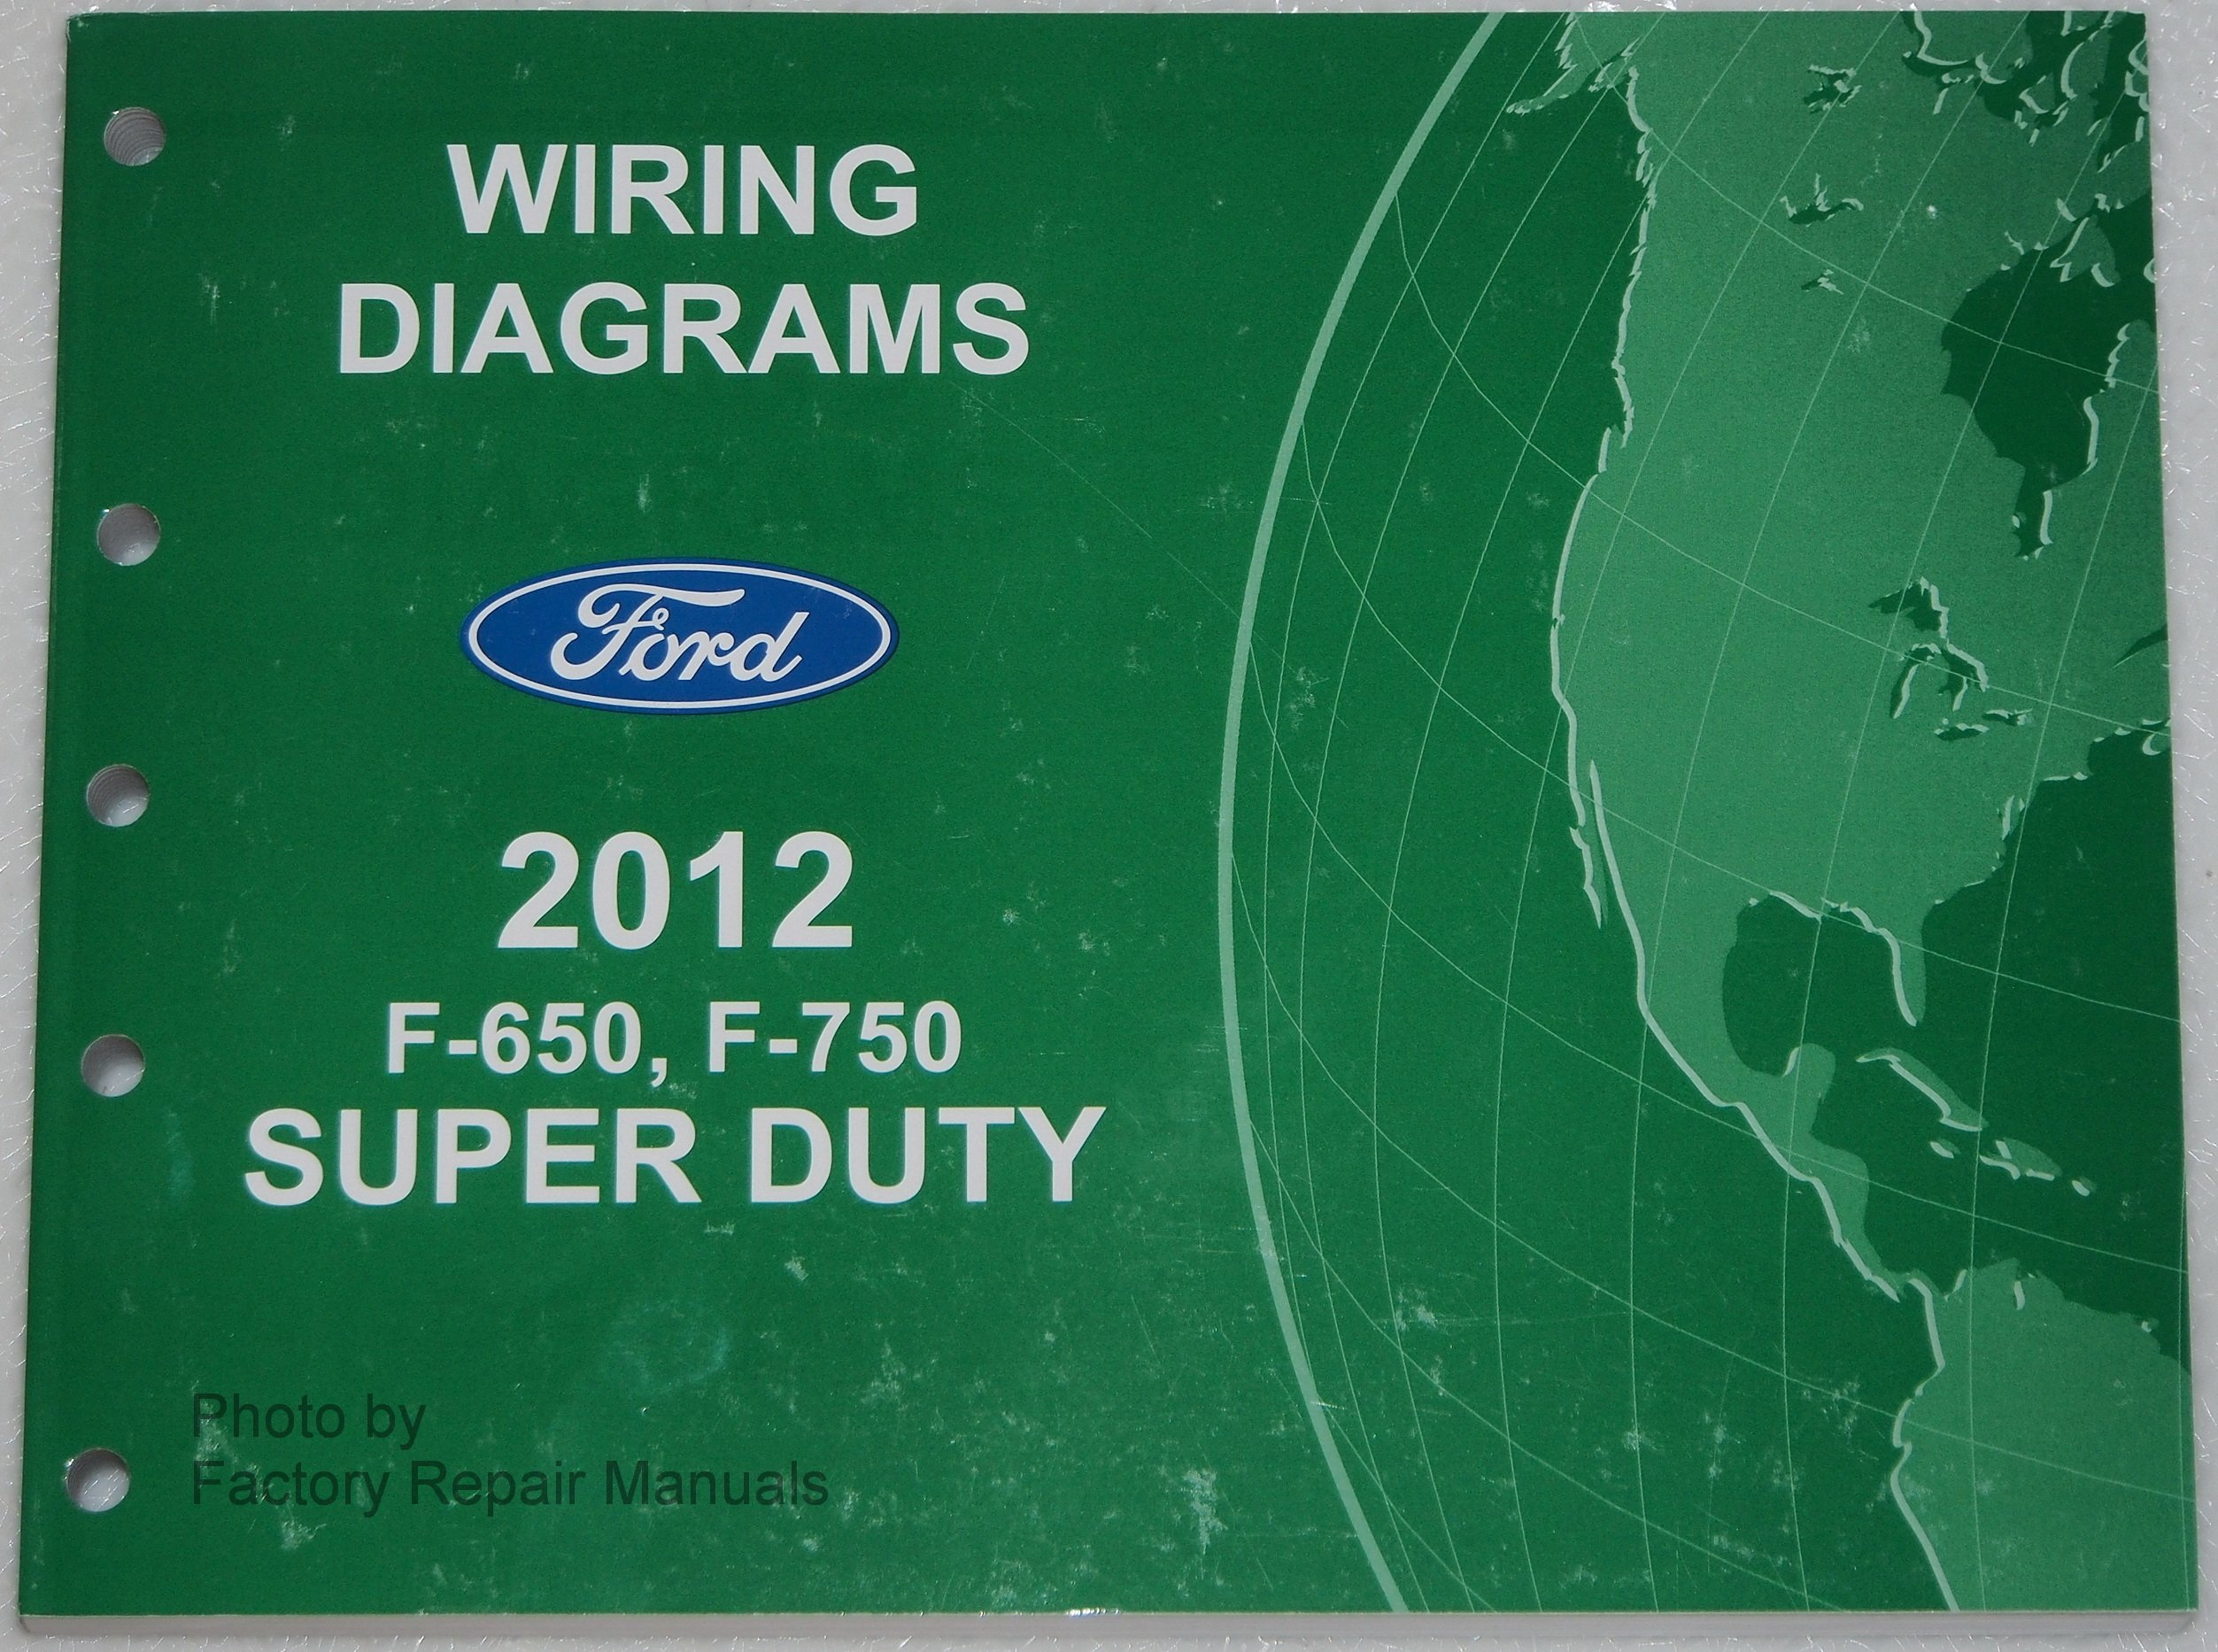 Ford F750 Wiring Schematic Diagram Schemes F650 2012 Motor Company Amazon Com Books Ranger